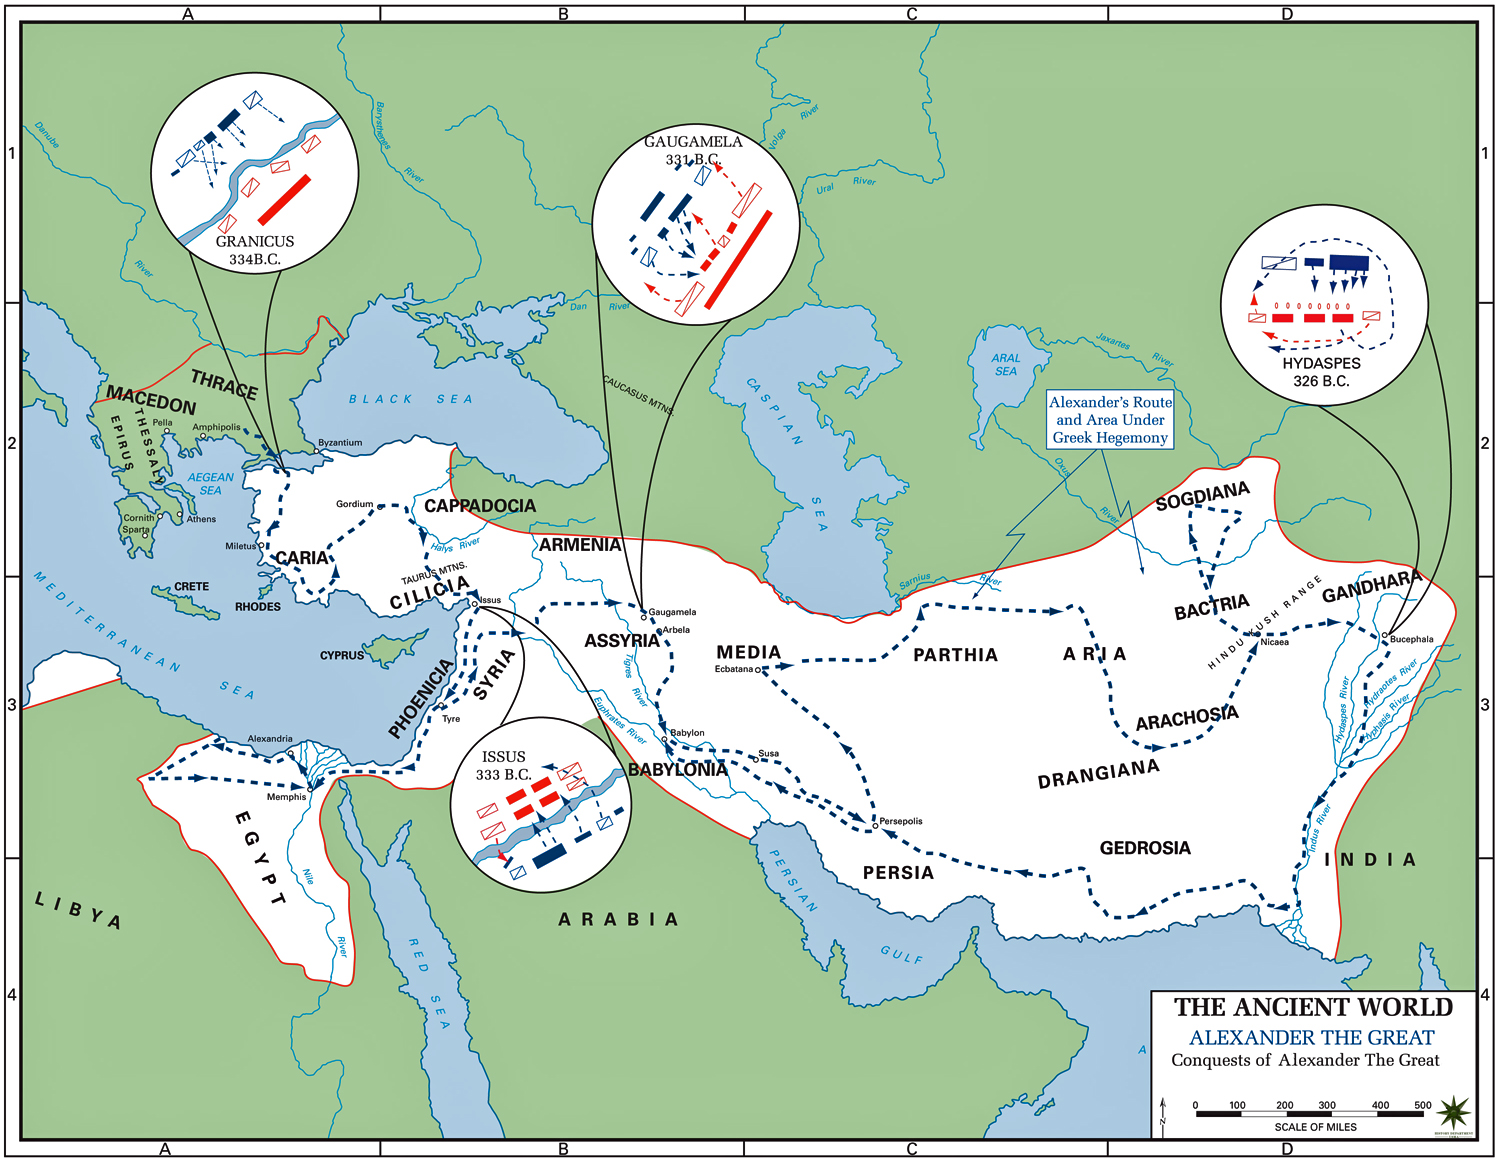 of the Conquests of Alexander the Great 336323 BC – Alexander the Great Worksheet